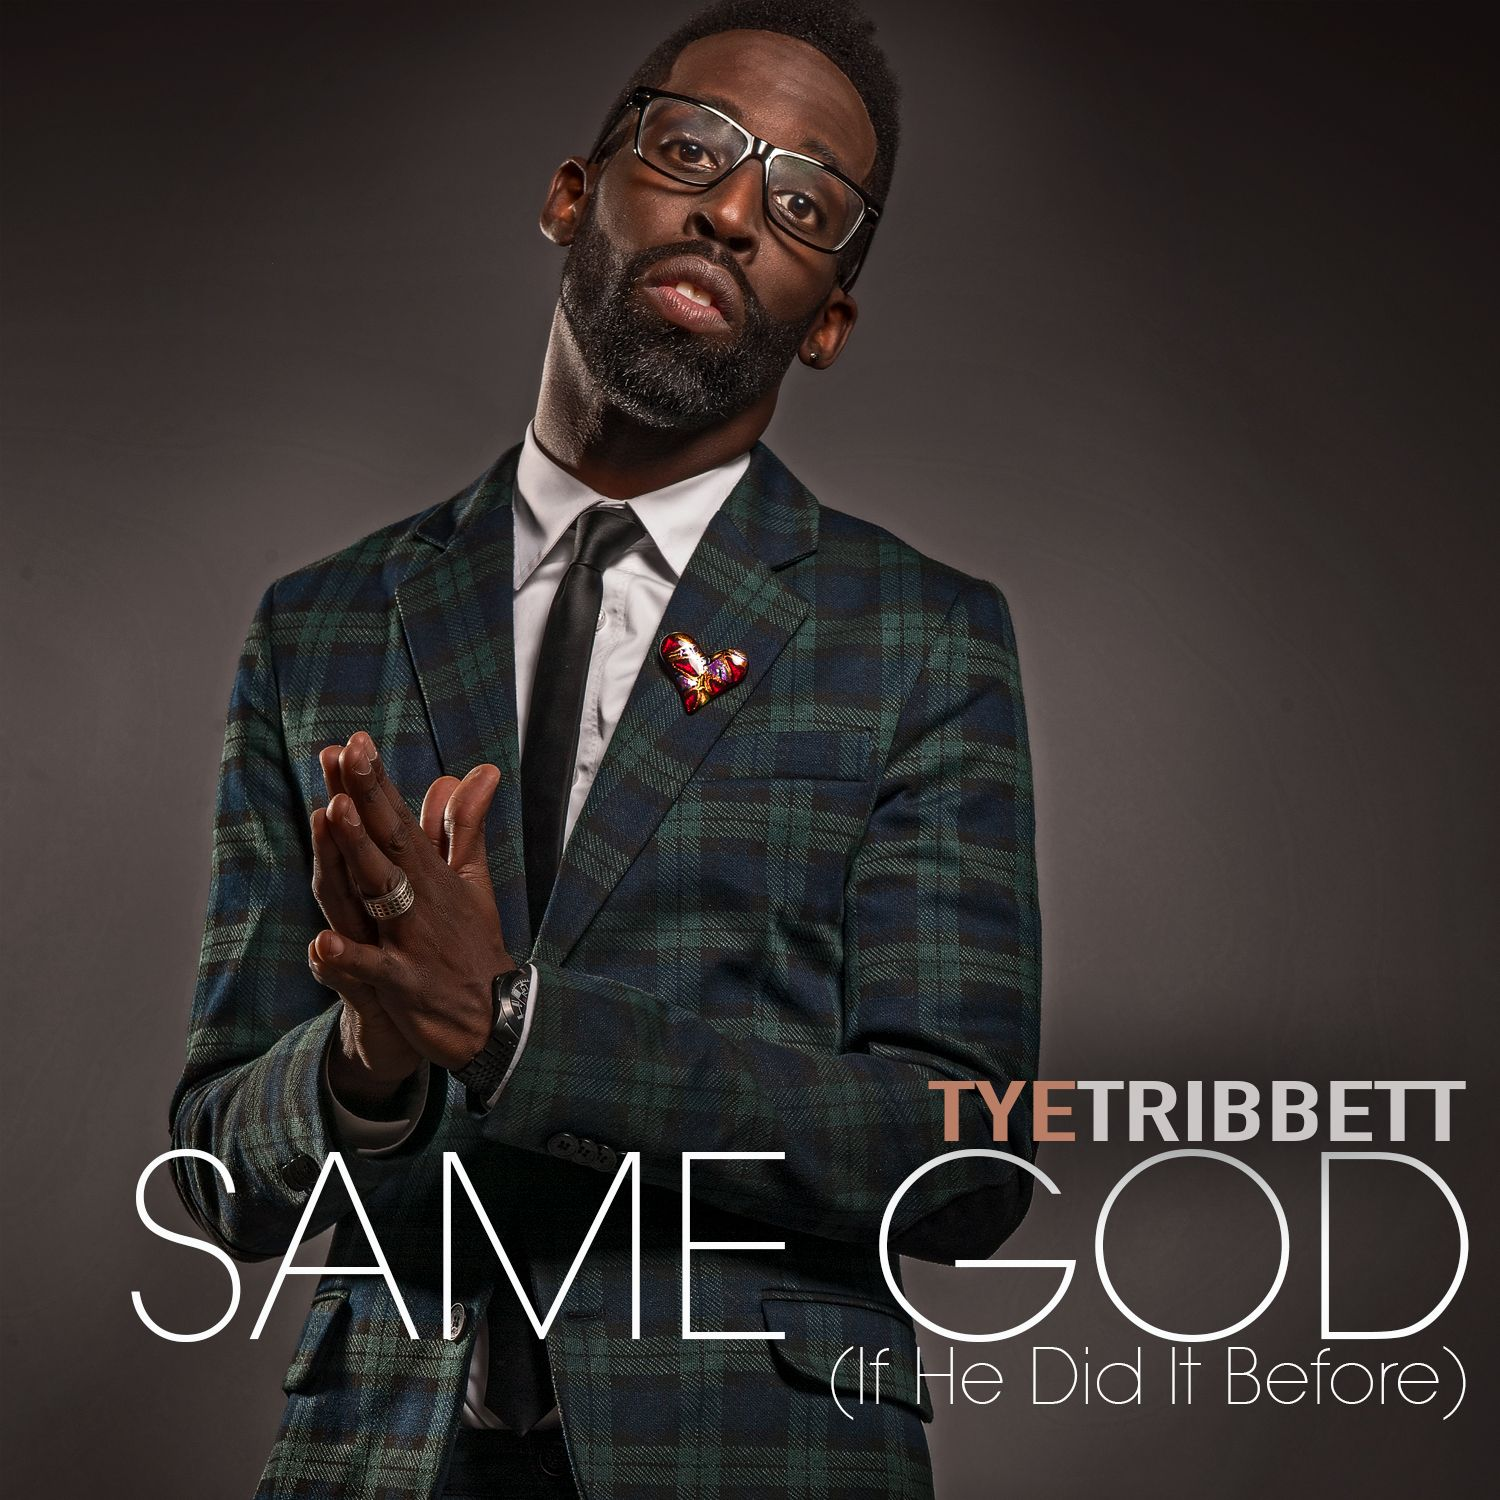 Pin by Carolyn Li on My Sounds Tye tribbett, Gospel